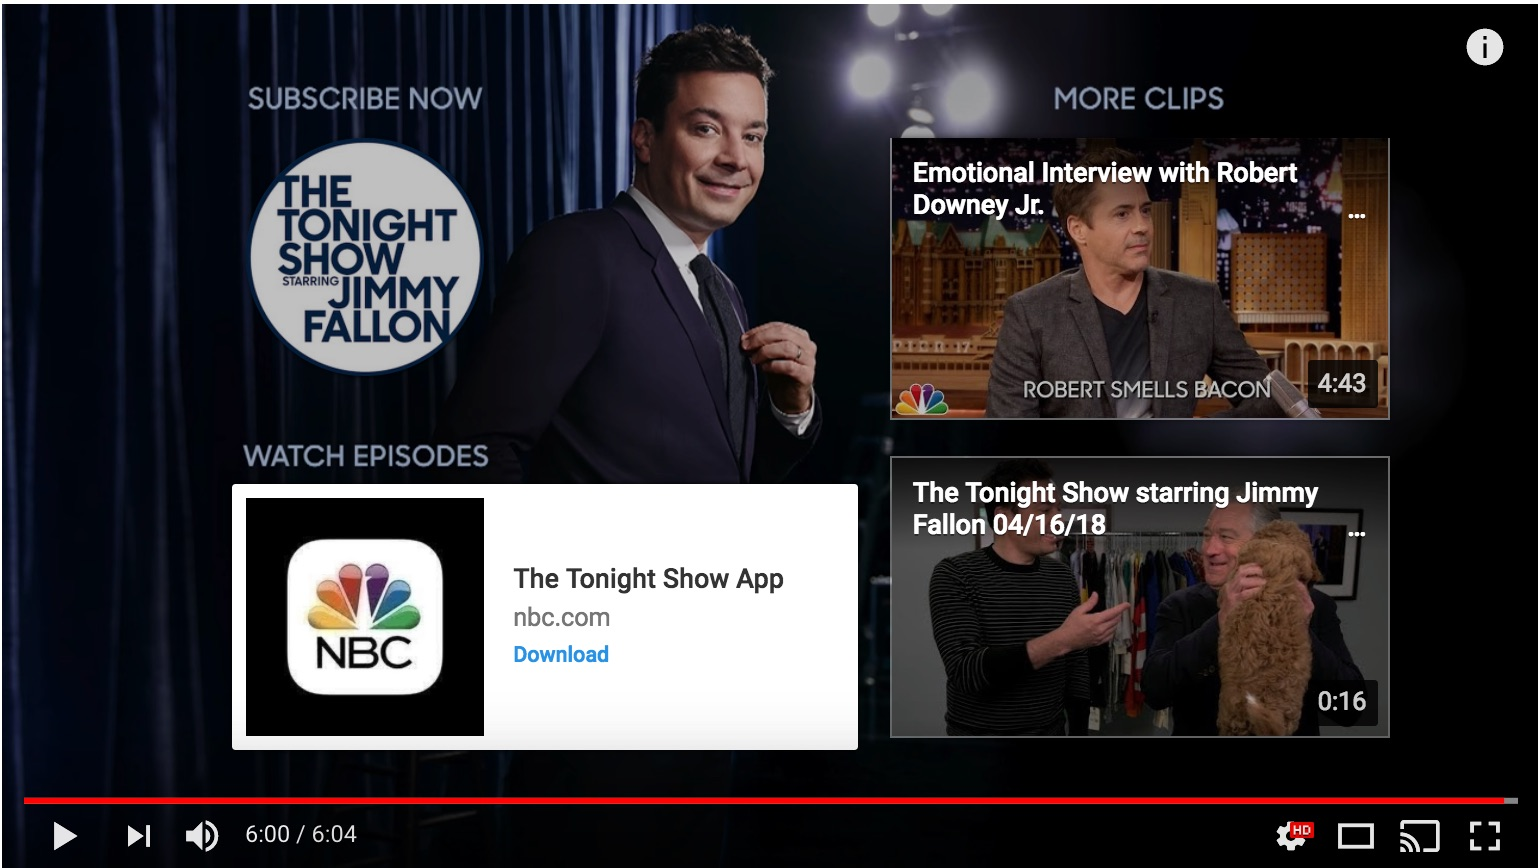 jimmy fallon youtube end screen